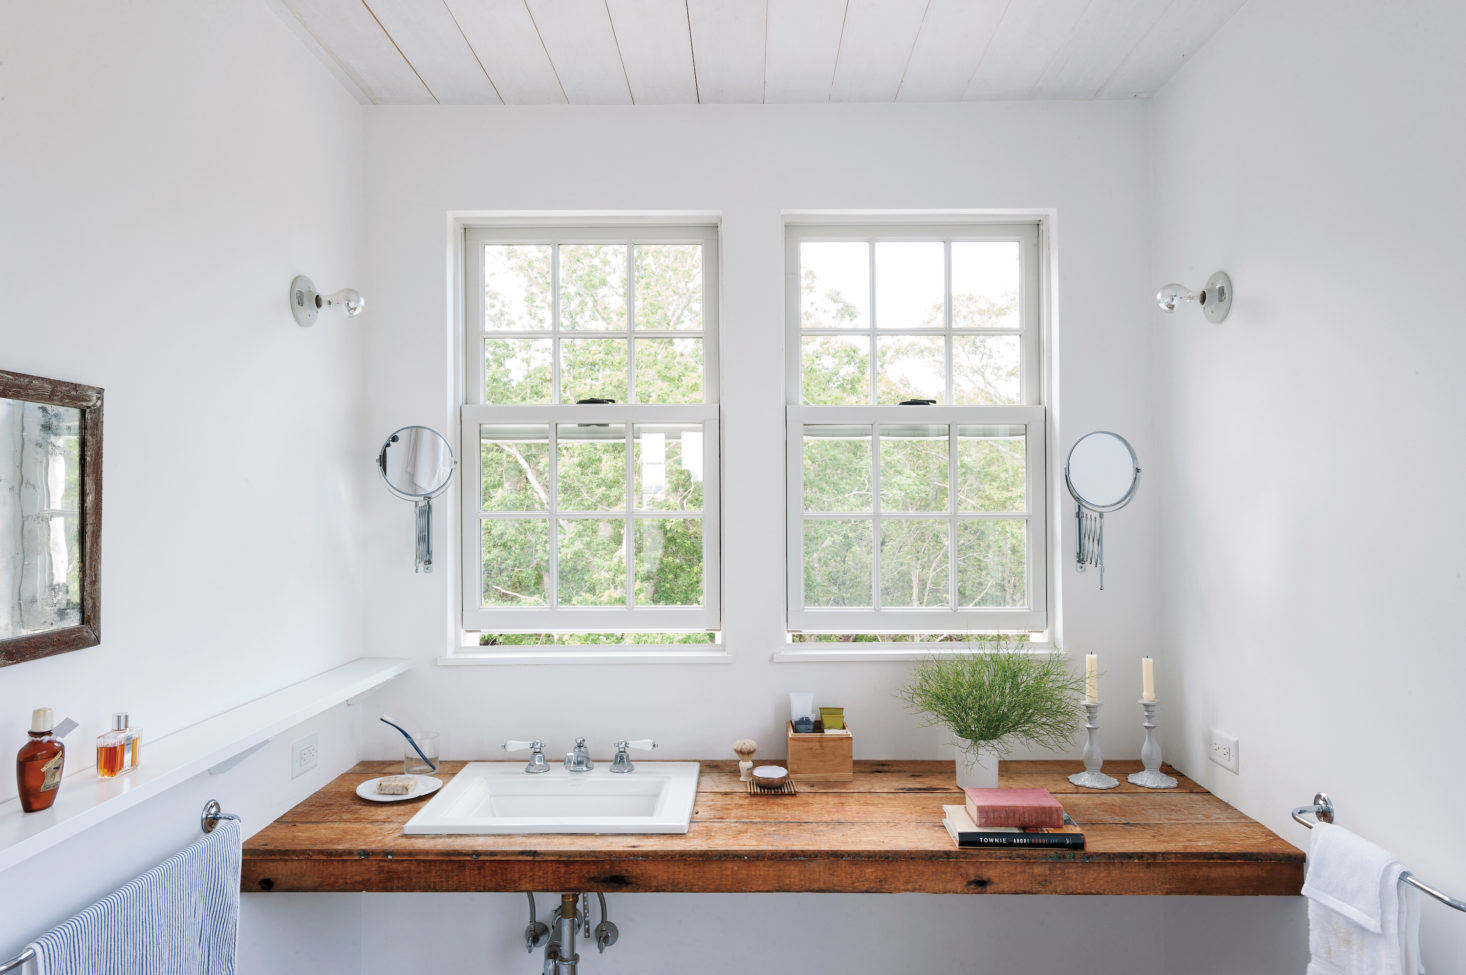 5 Baths with Simple, Artful Styling from the Remodelista Archives